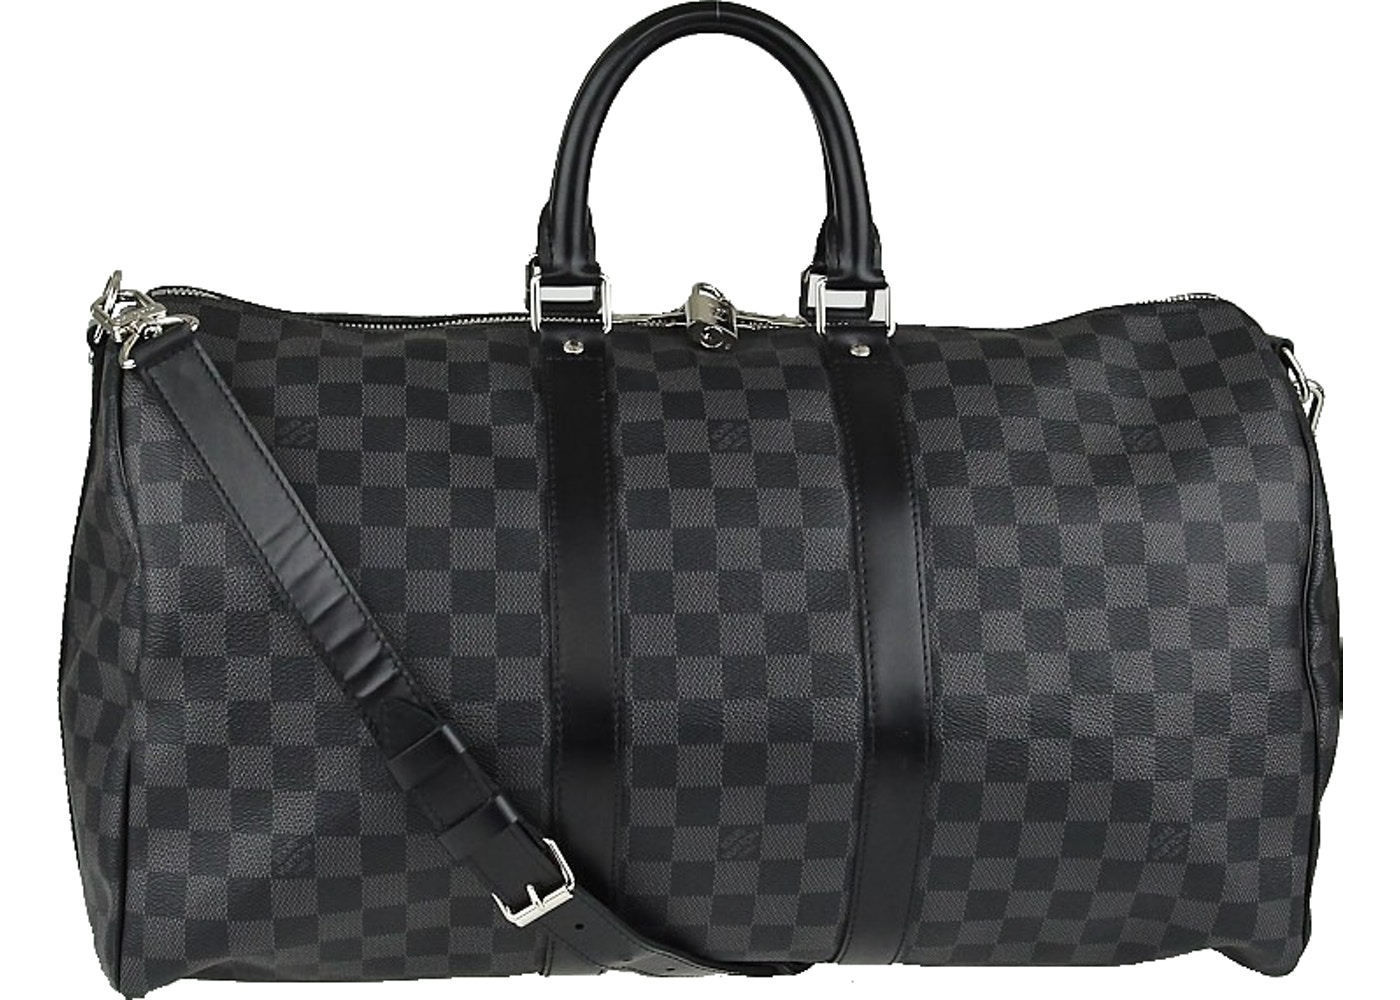 f99d88ae5469 Louis Vuitton Keepall Bandouliere Damier Graphite 45 Black